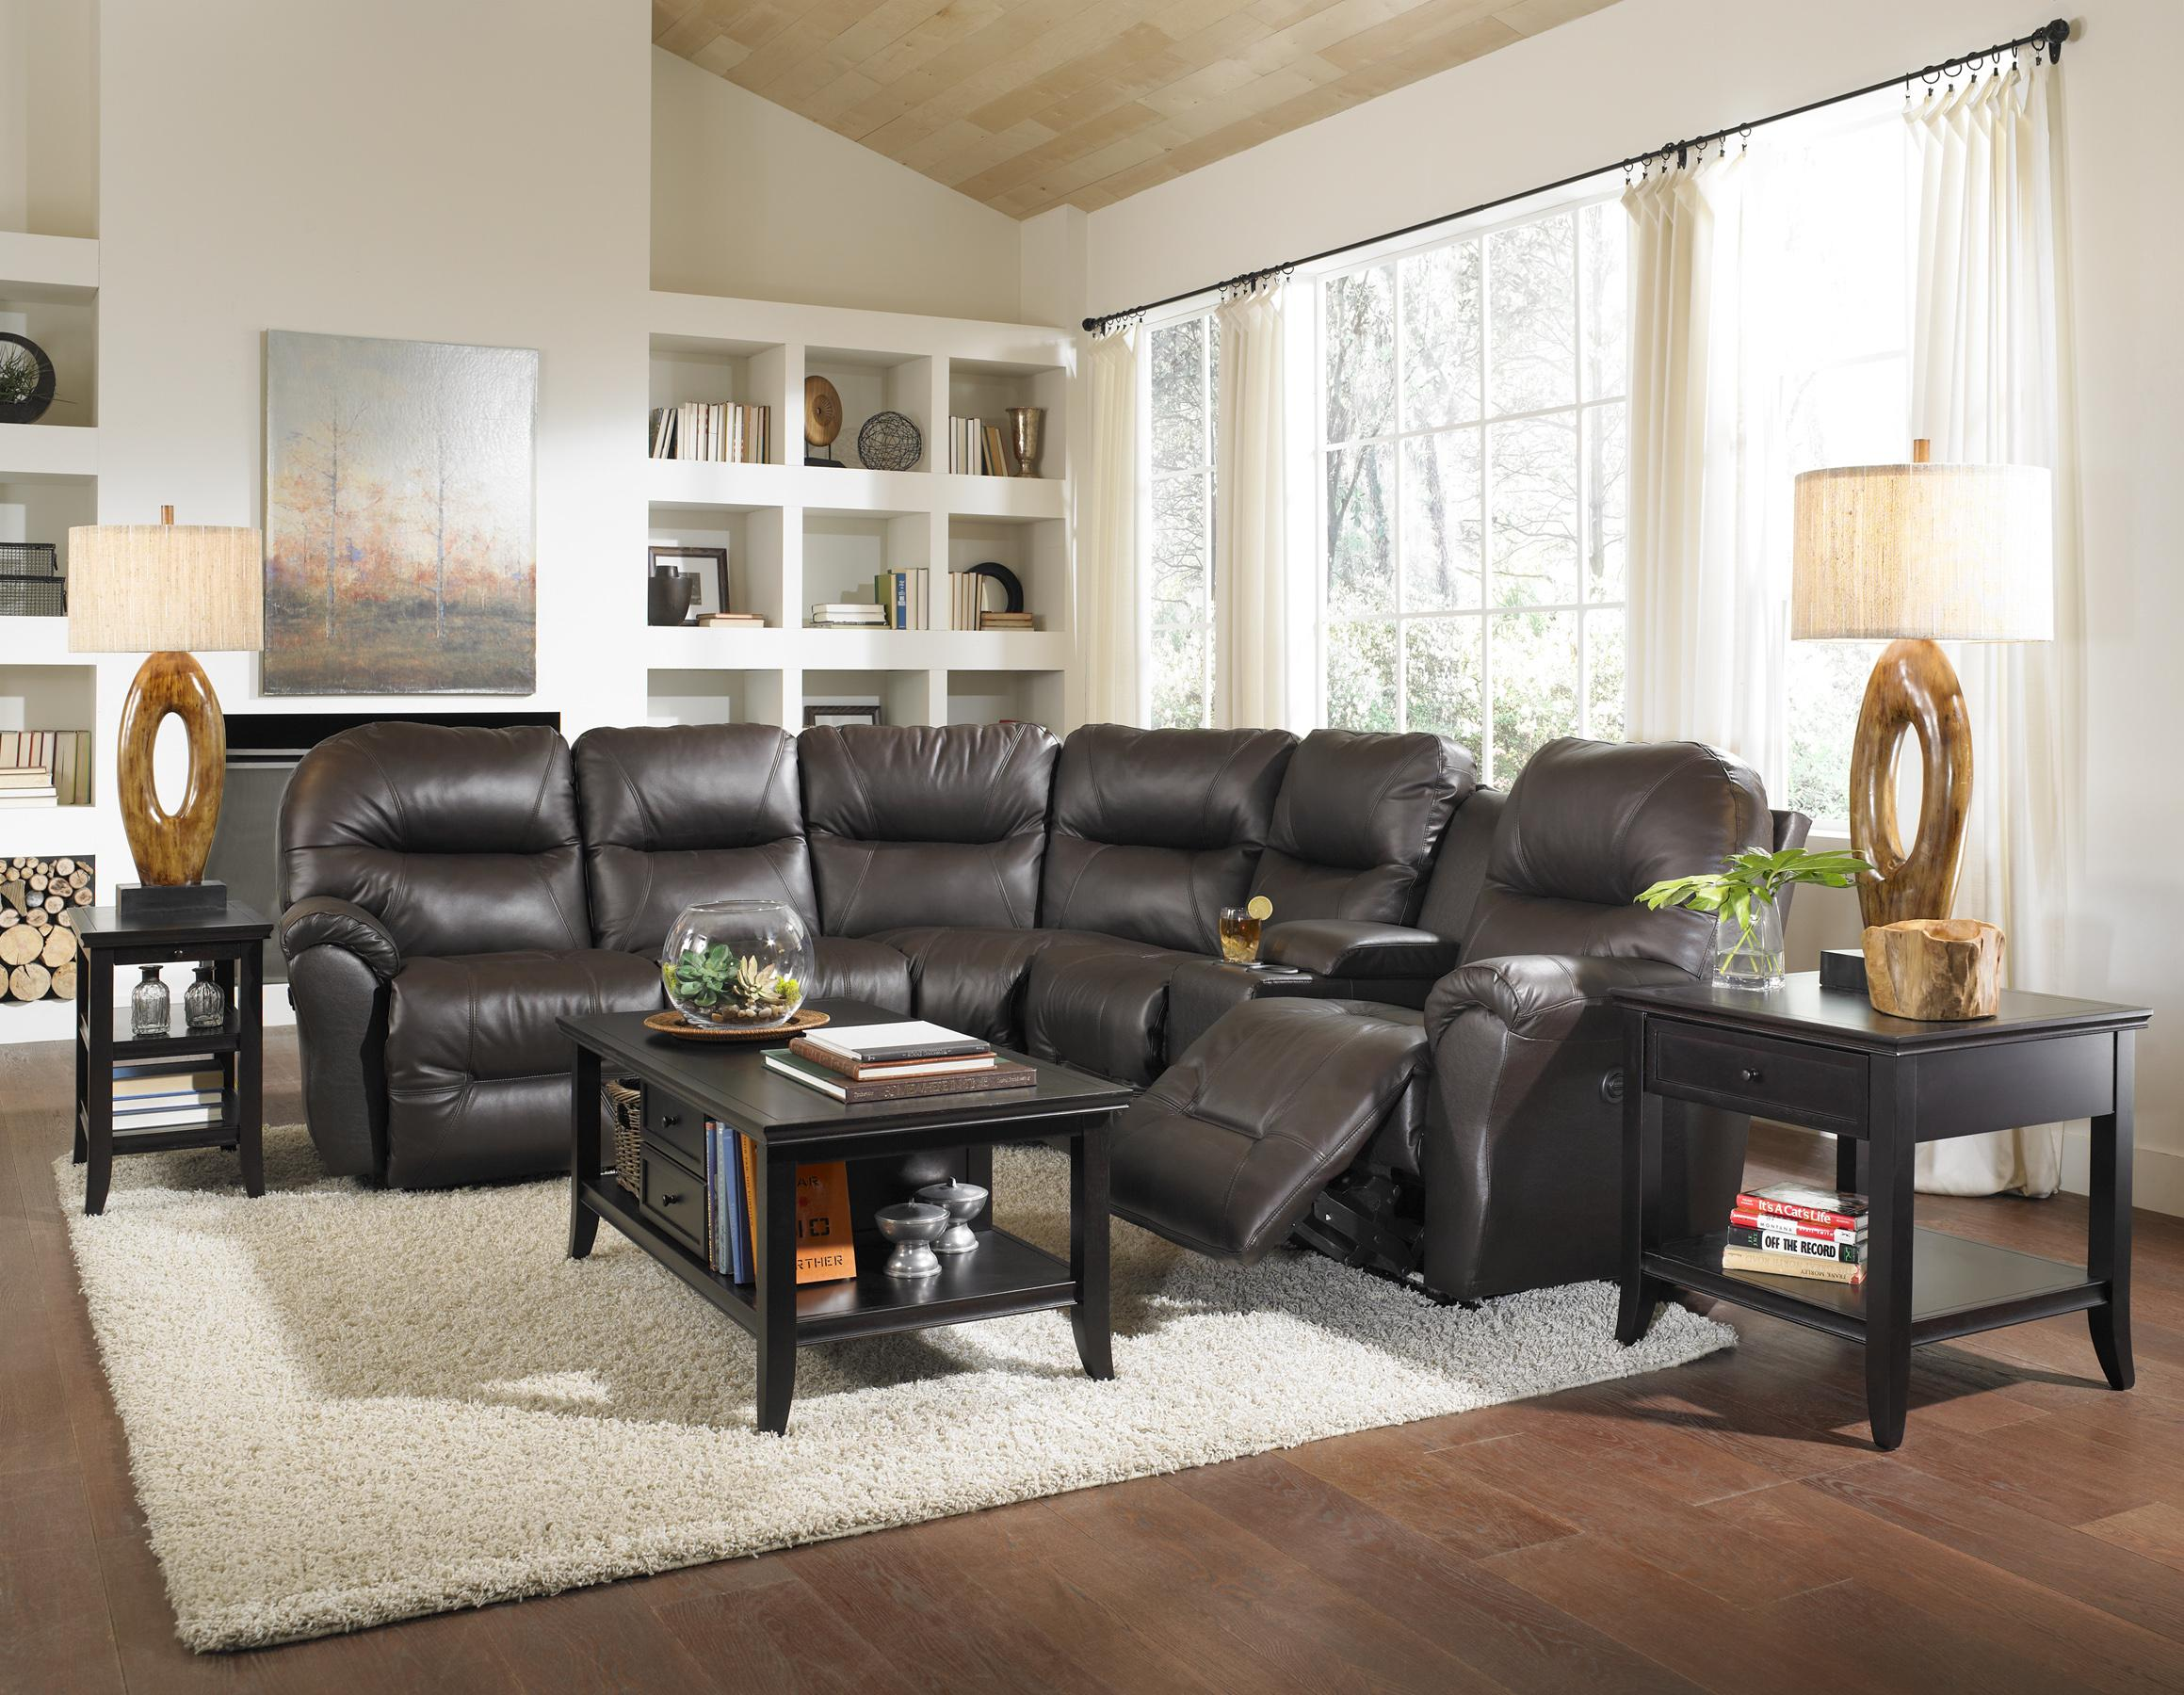 Best Home Furnishings Bodie 3 Seater Power Reclining Home Theater Group    Wayside Furniture   Theater Seating. Best Home Furnishings Bodie 3 Seater Power Reclining Home Theater